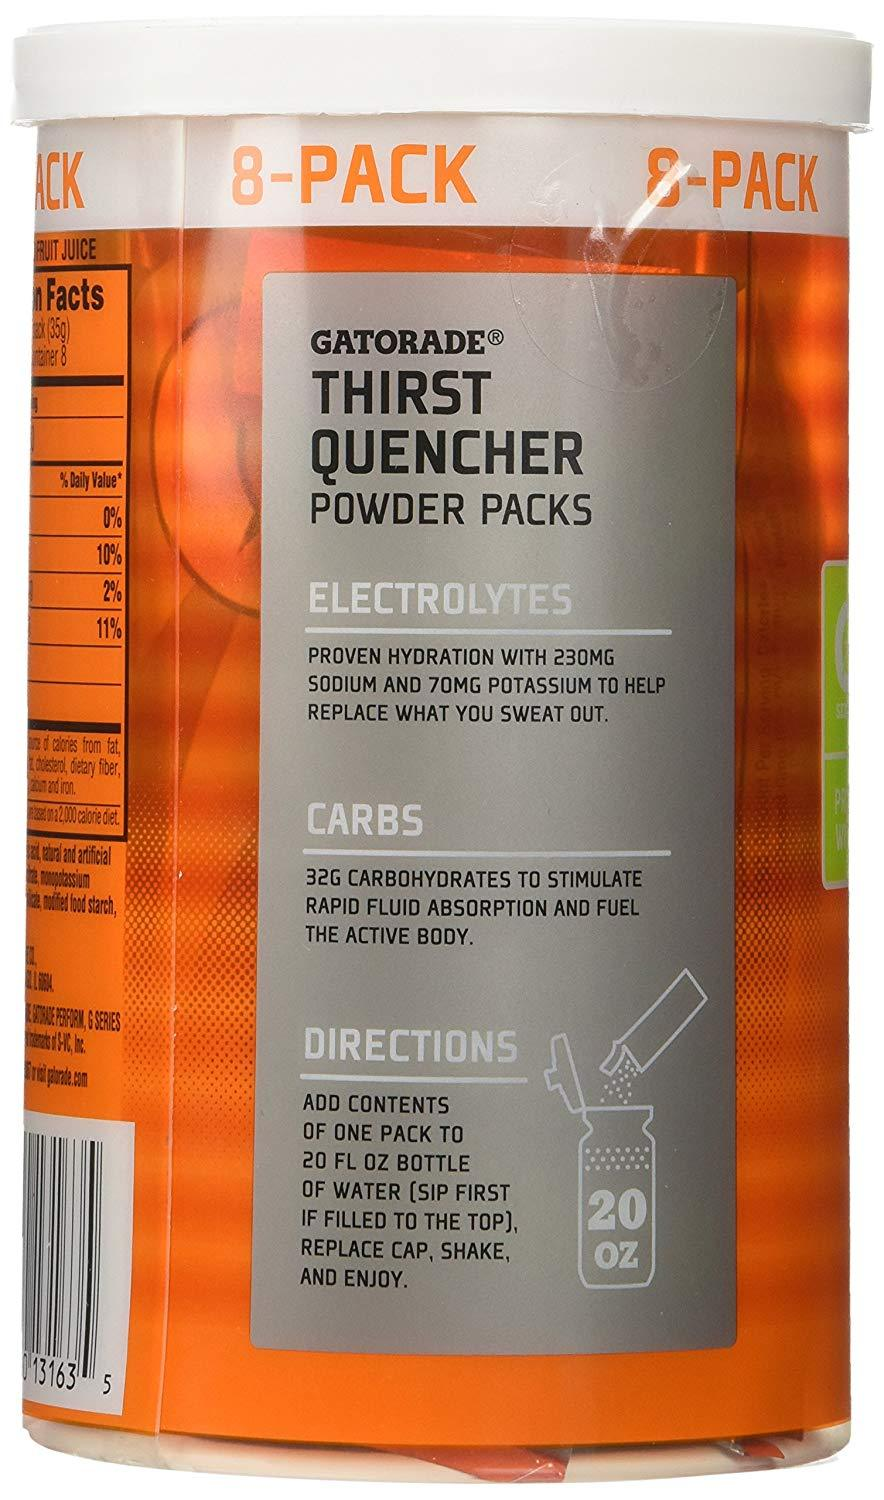 Gatorade Thirst Quencher Powder Packs Gatorade